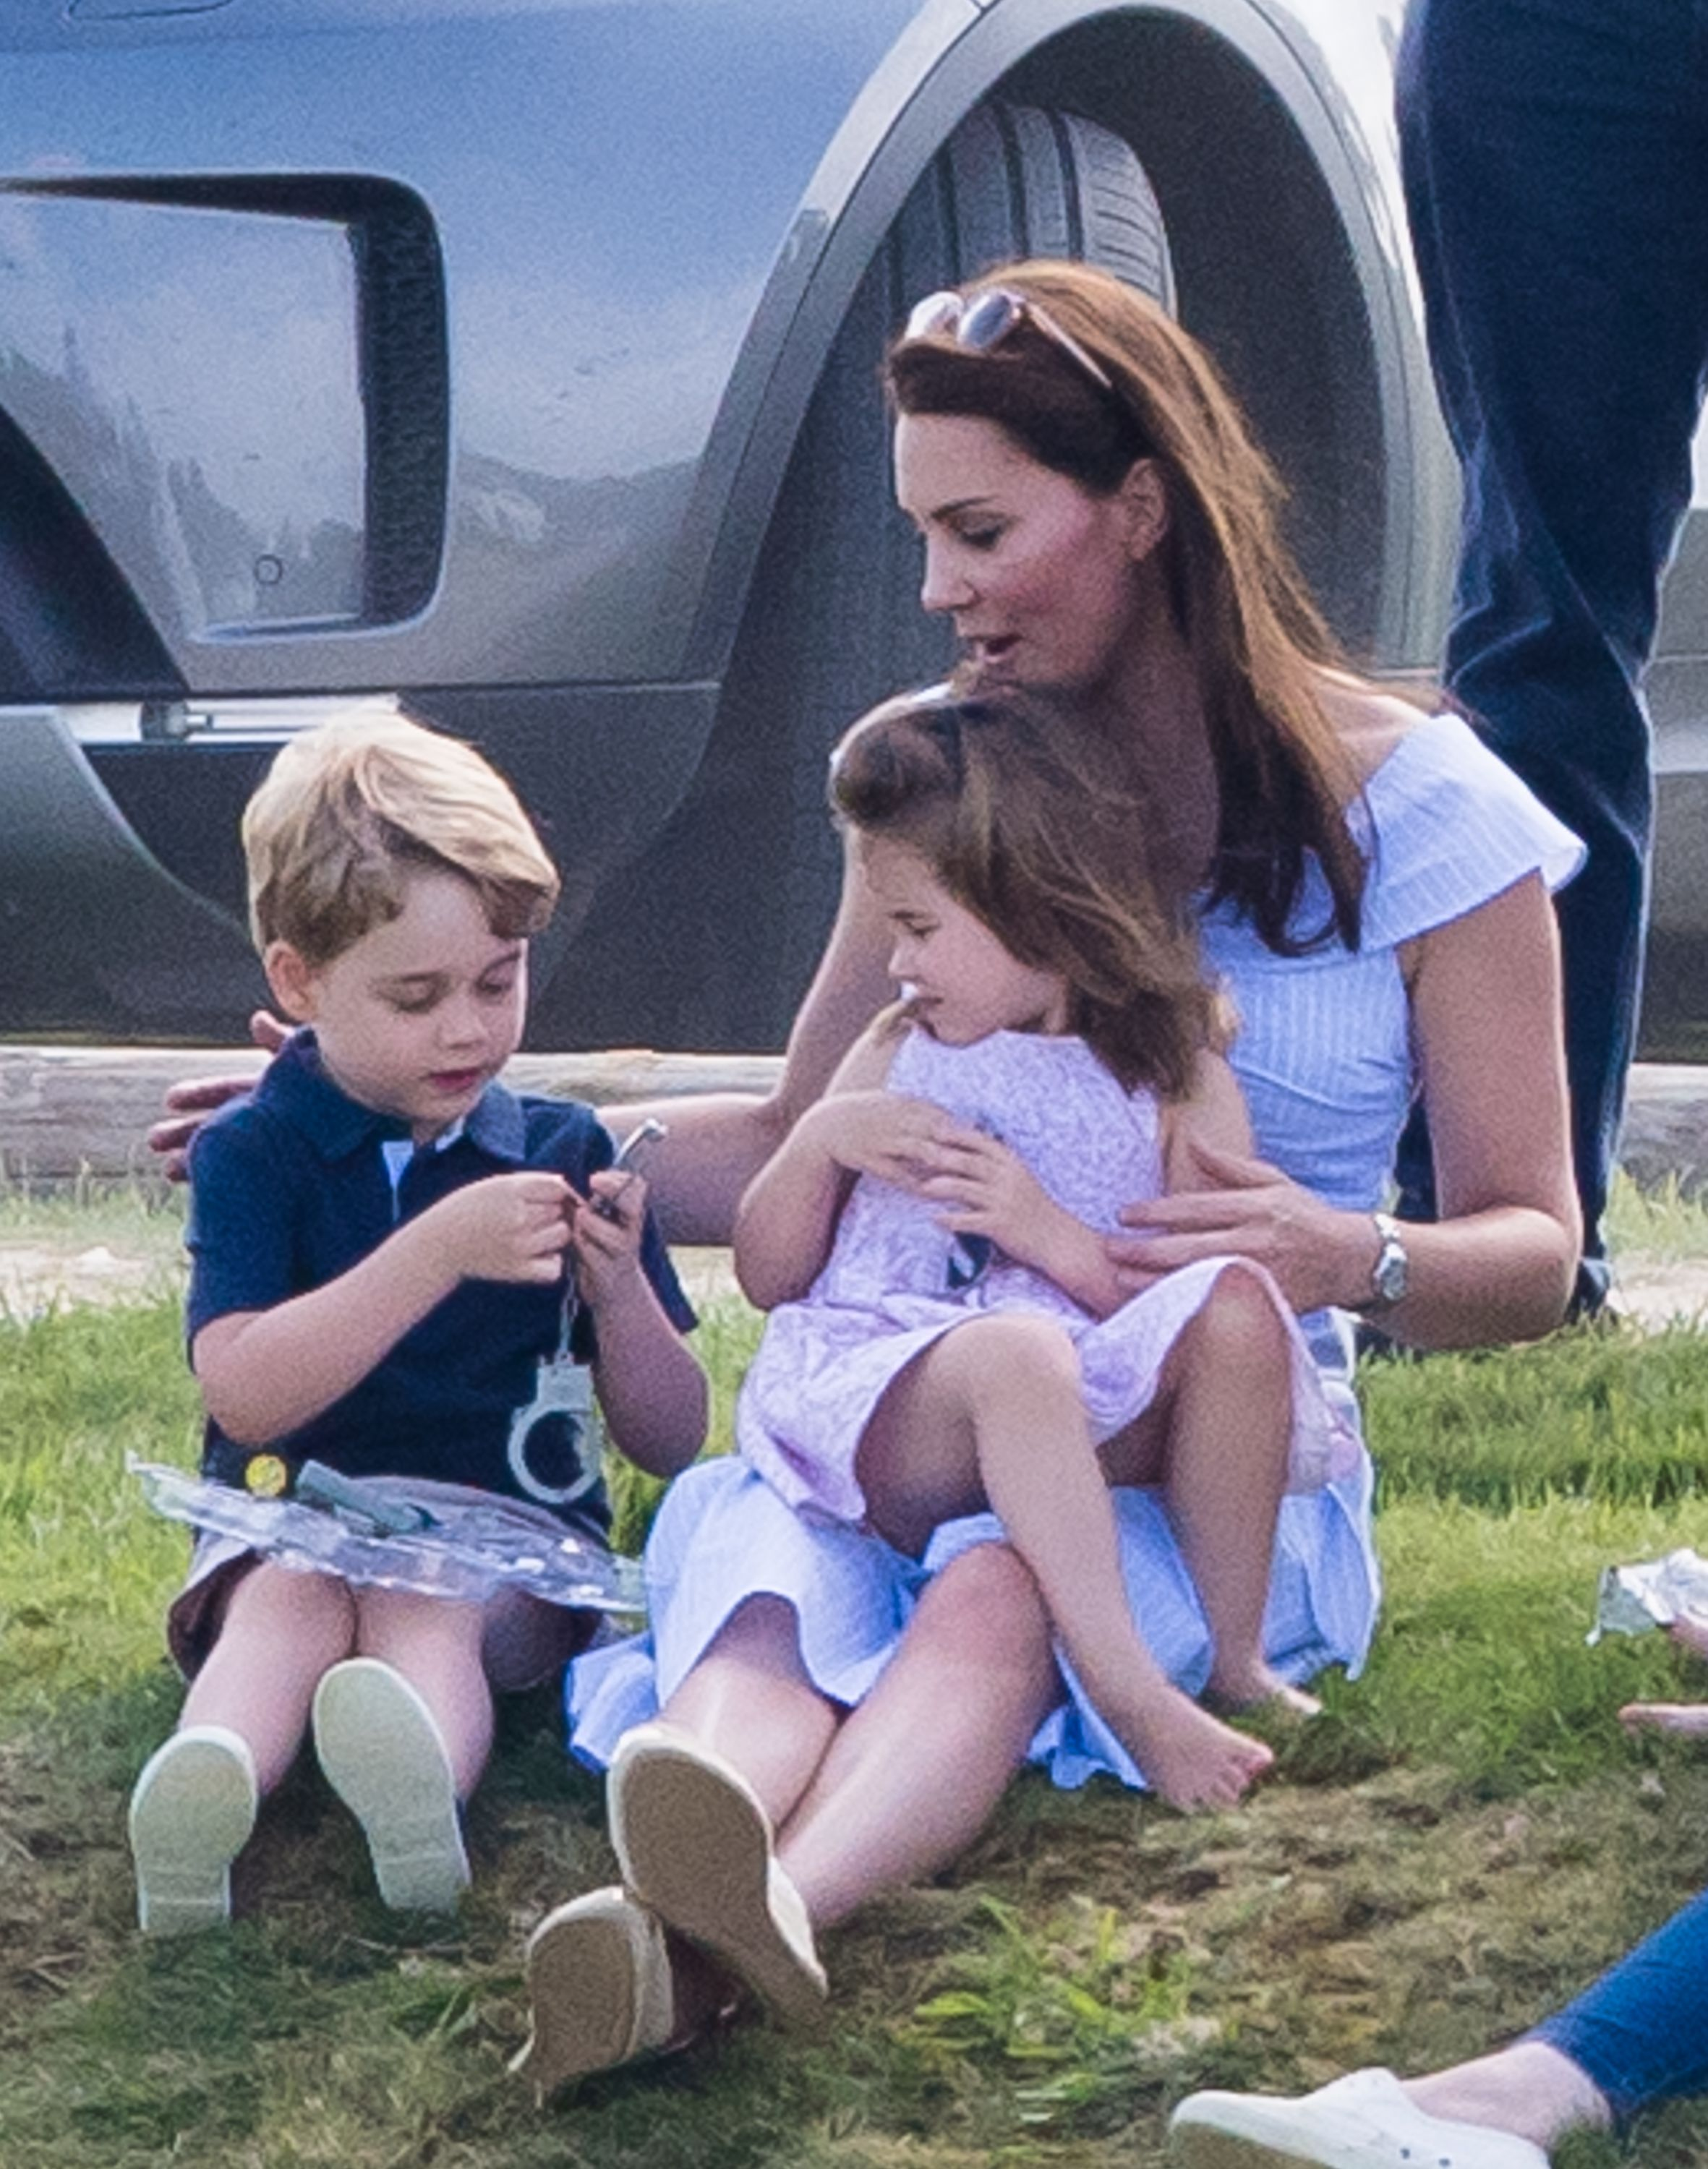 Kate Middleton, the Duchess of Cambridge, with her children, Prince George and Princess Charlotte.